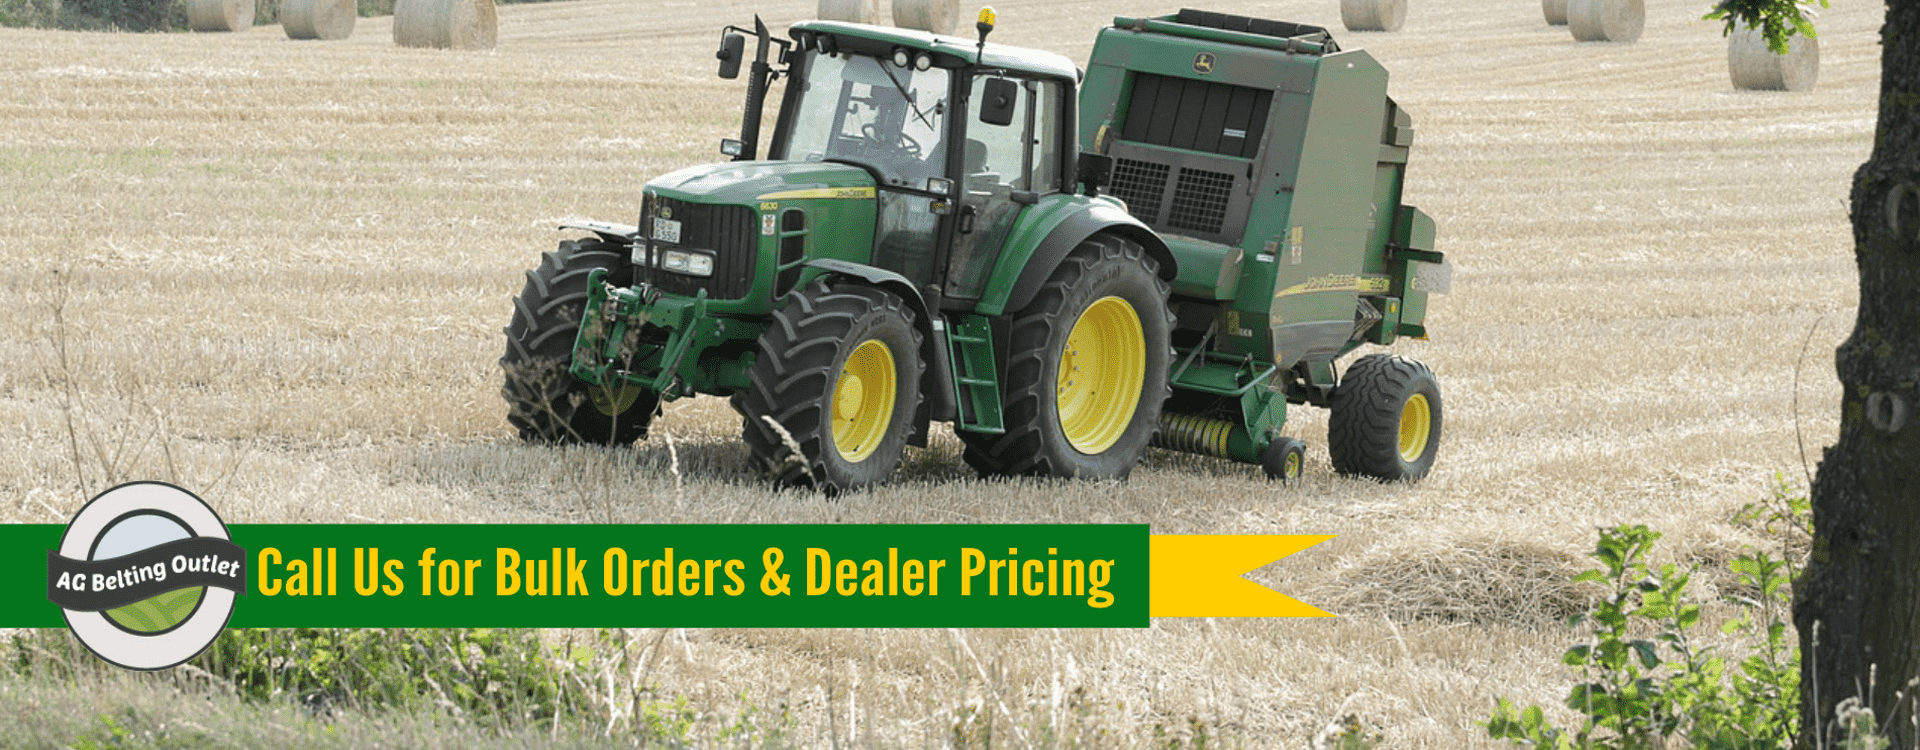 Baler Belts For Sale | John Deere, Vermeer, Hay & Round Baler Belts